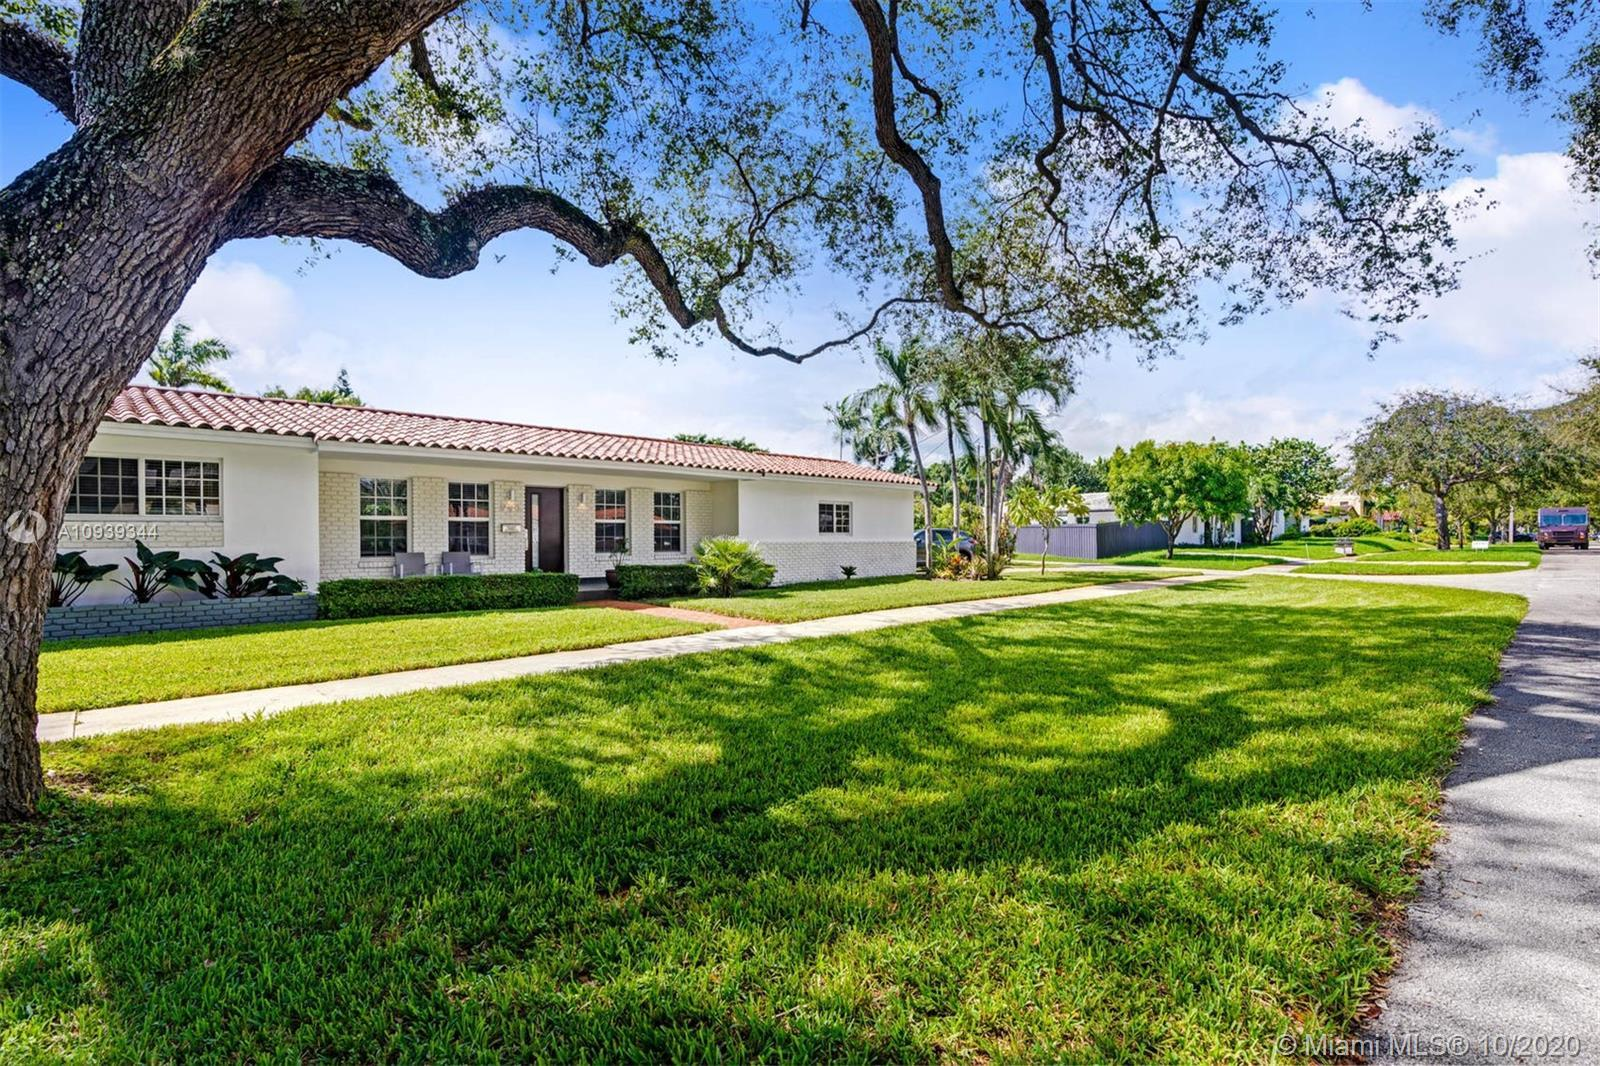 Completely renovated move-in ready Miami Shores 3BD/2BA home. All bedrooms are spacious with large c